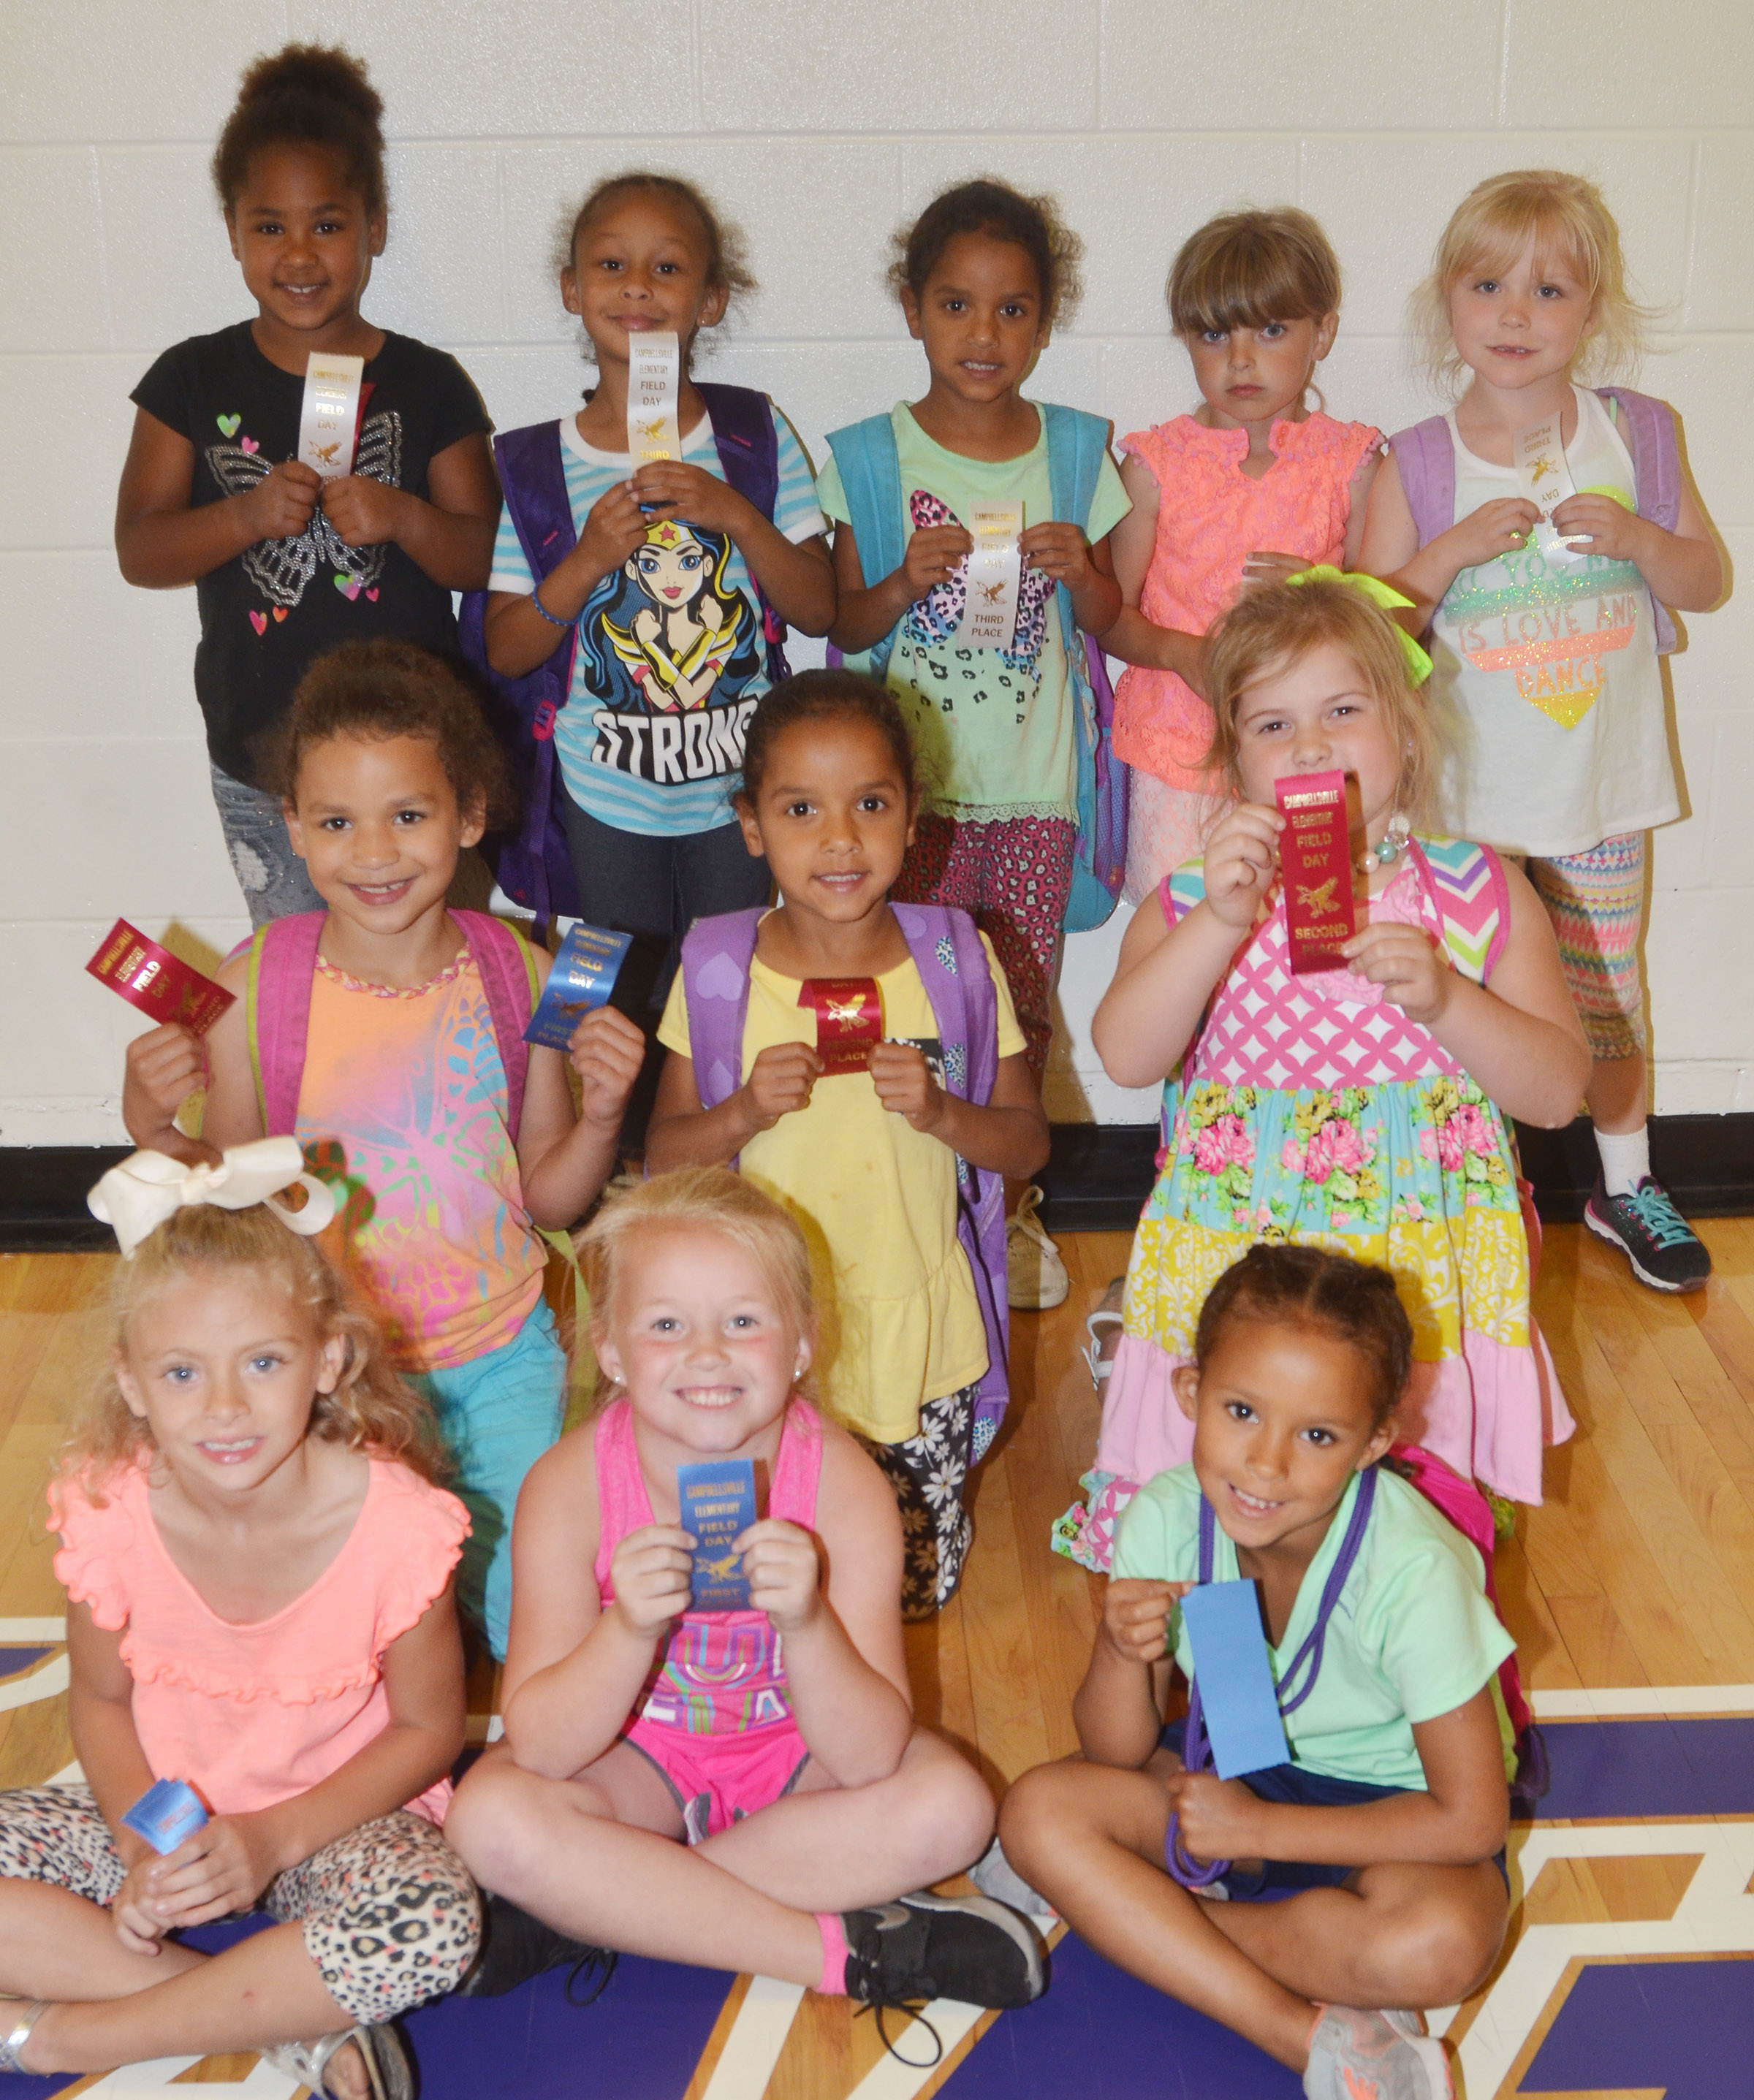 CES kindergarten girls who were classroom winners in the 50-yard dash are, from left, front, Aliyah Litsey, Lillie Judd and Aleja Taylor, who were first place winners. Second row, Aleeya Spaulding, first place winner, and Kylei Thompson and Aubreigh Knifley, who were second place winners. Back, Raelin Goddard, second place winner, and Elyzabeth Fisher, Kaylee Thompson, Madison Wilhoite and Ava Bennett-Marr, who were third place winners. Absent from the photo is Hannah Matias, who was a second place winner. Overall, Aliyah Litsey was first, Aleeya Spaulding was second and Raelin Goddard was third.